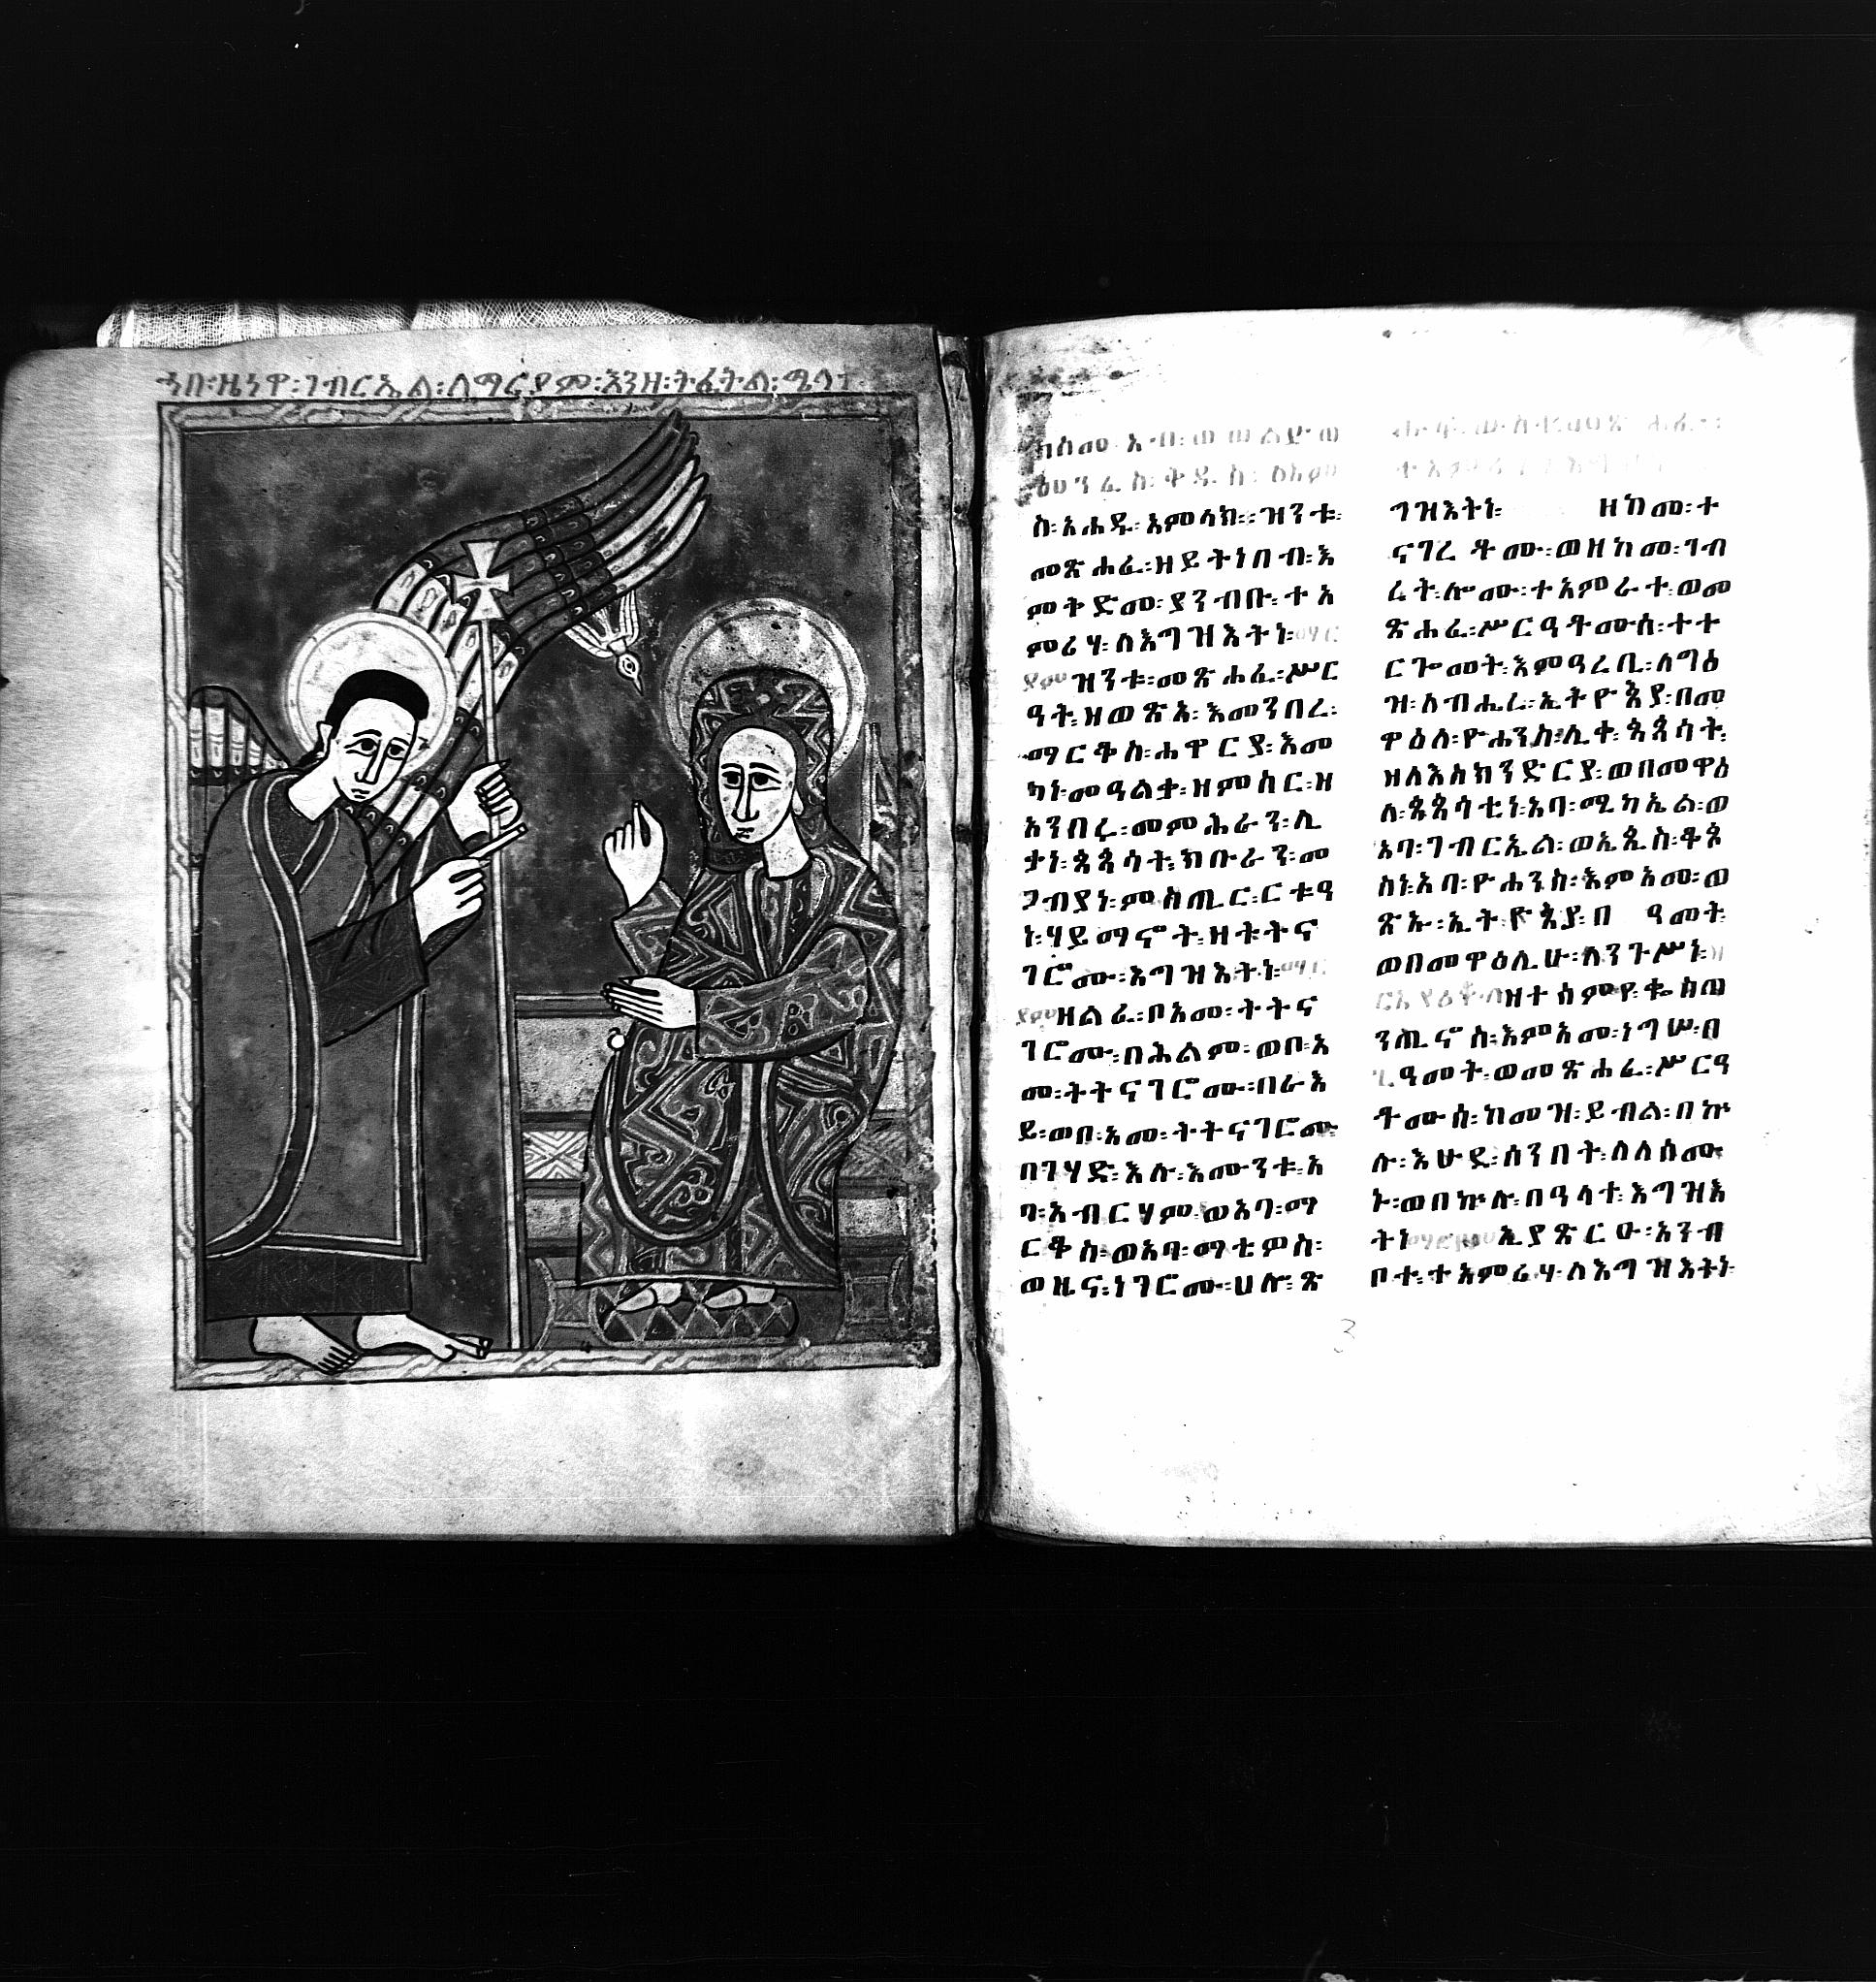 Ethiopian manuscript containing Miracles of Mary (<a href='https://w3id.org/vhmml/readingRoom/view/201729'>EMML 9002</a>)